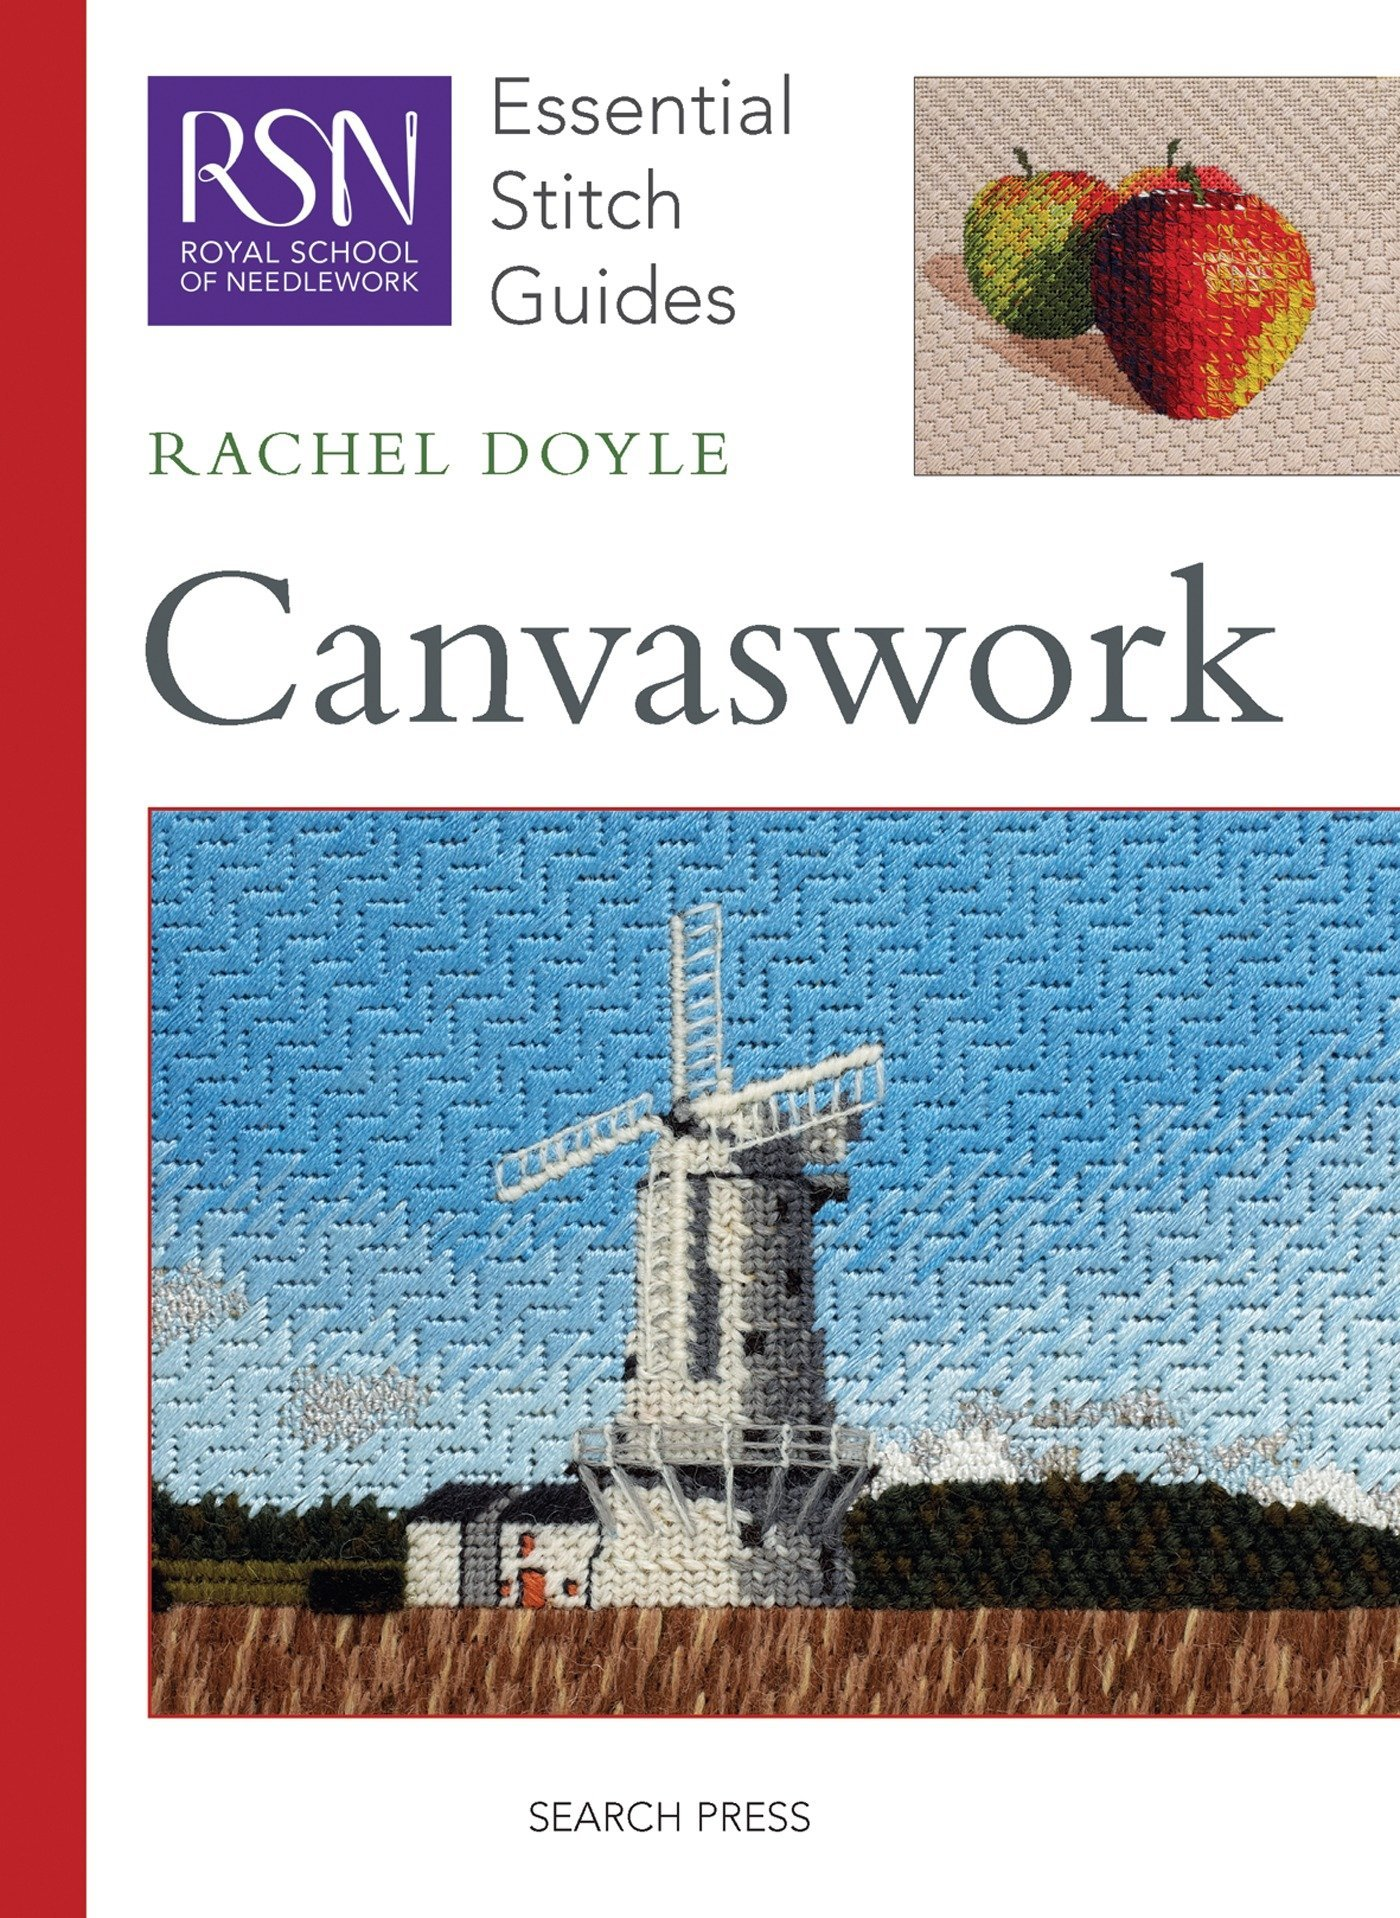 RSN ESG: Canvaswork: Essential Stitch Guides (Royal School of Needlework Essential Stitch Guides)